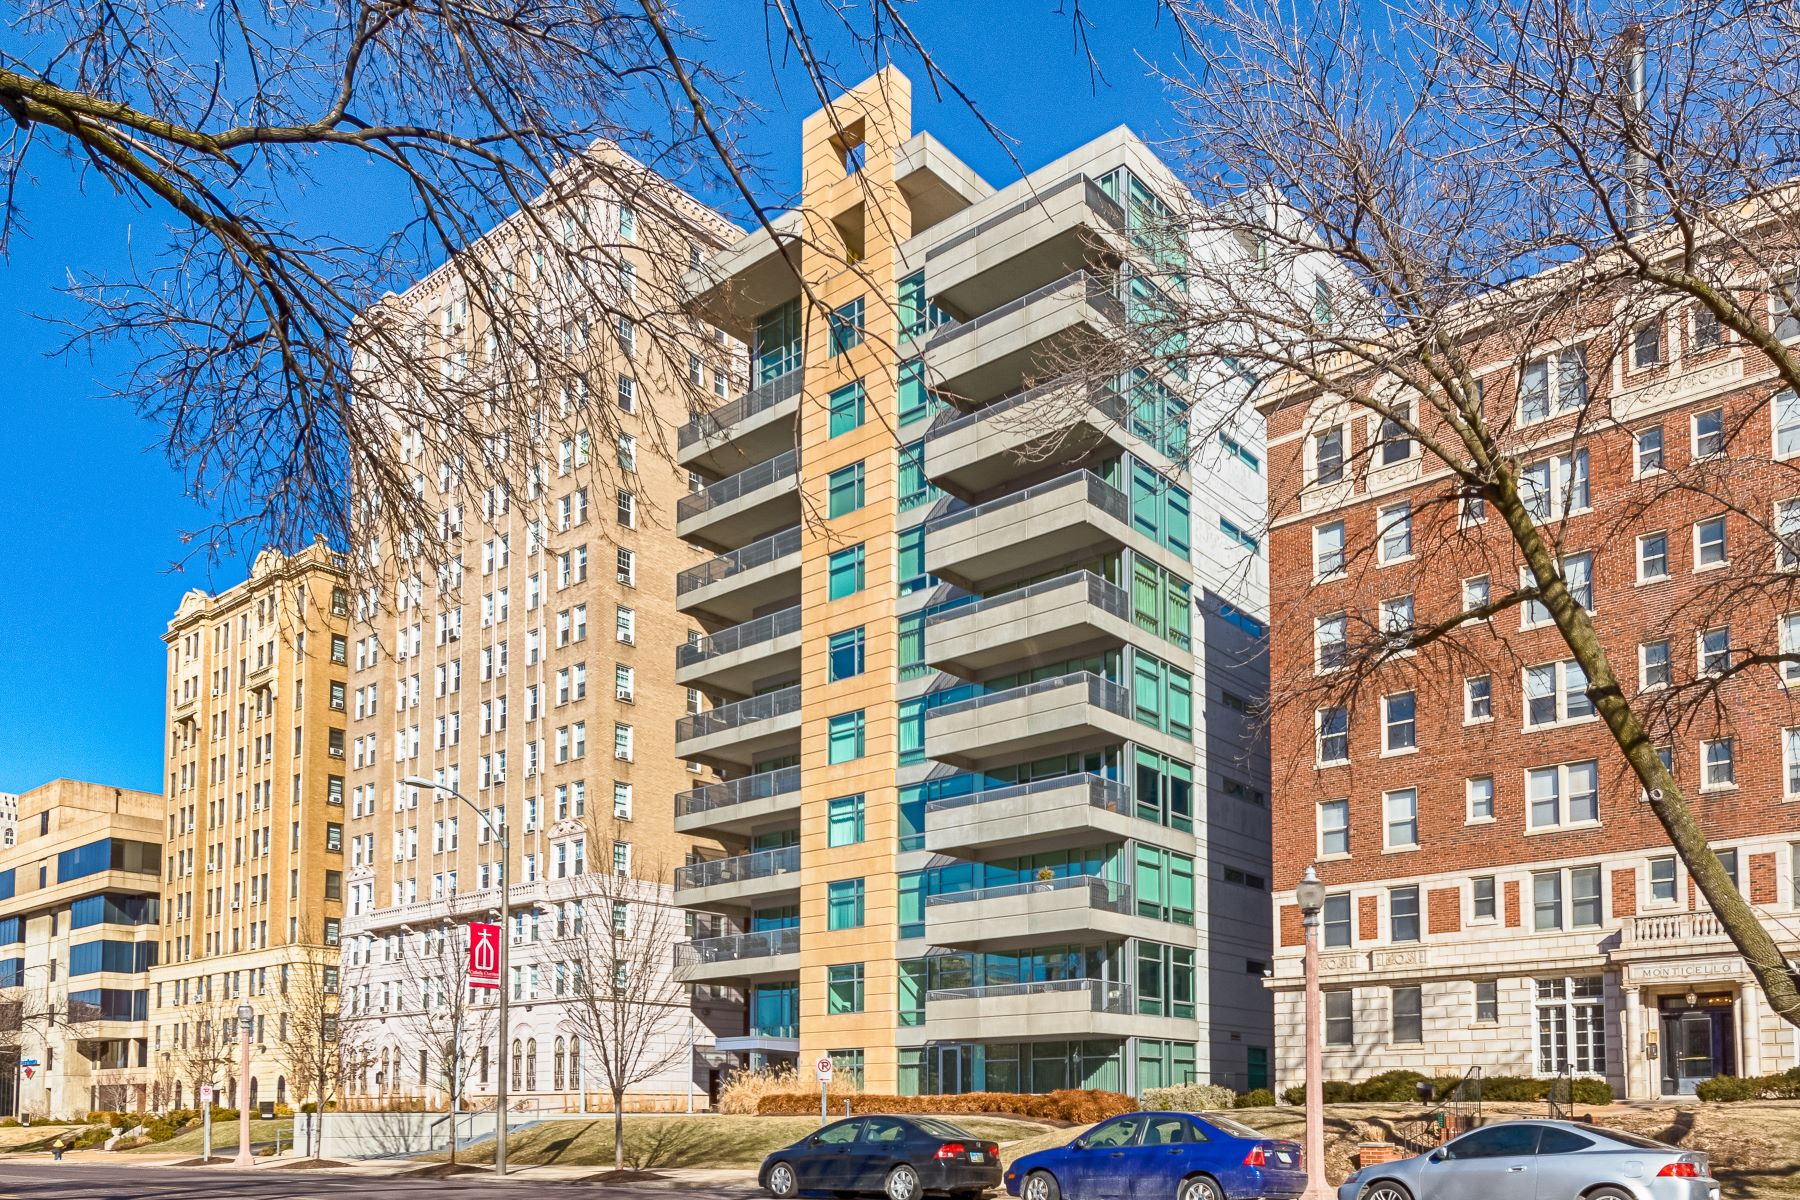 Property for Sale at A Central West End Oasis 4545 Lindell Boulevard #14 St. Louis, Missouri 63108 United States